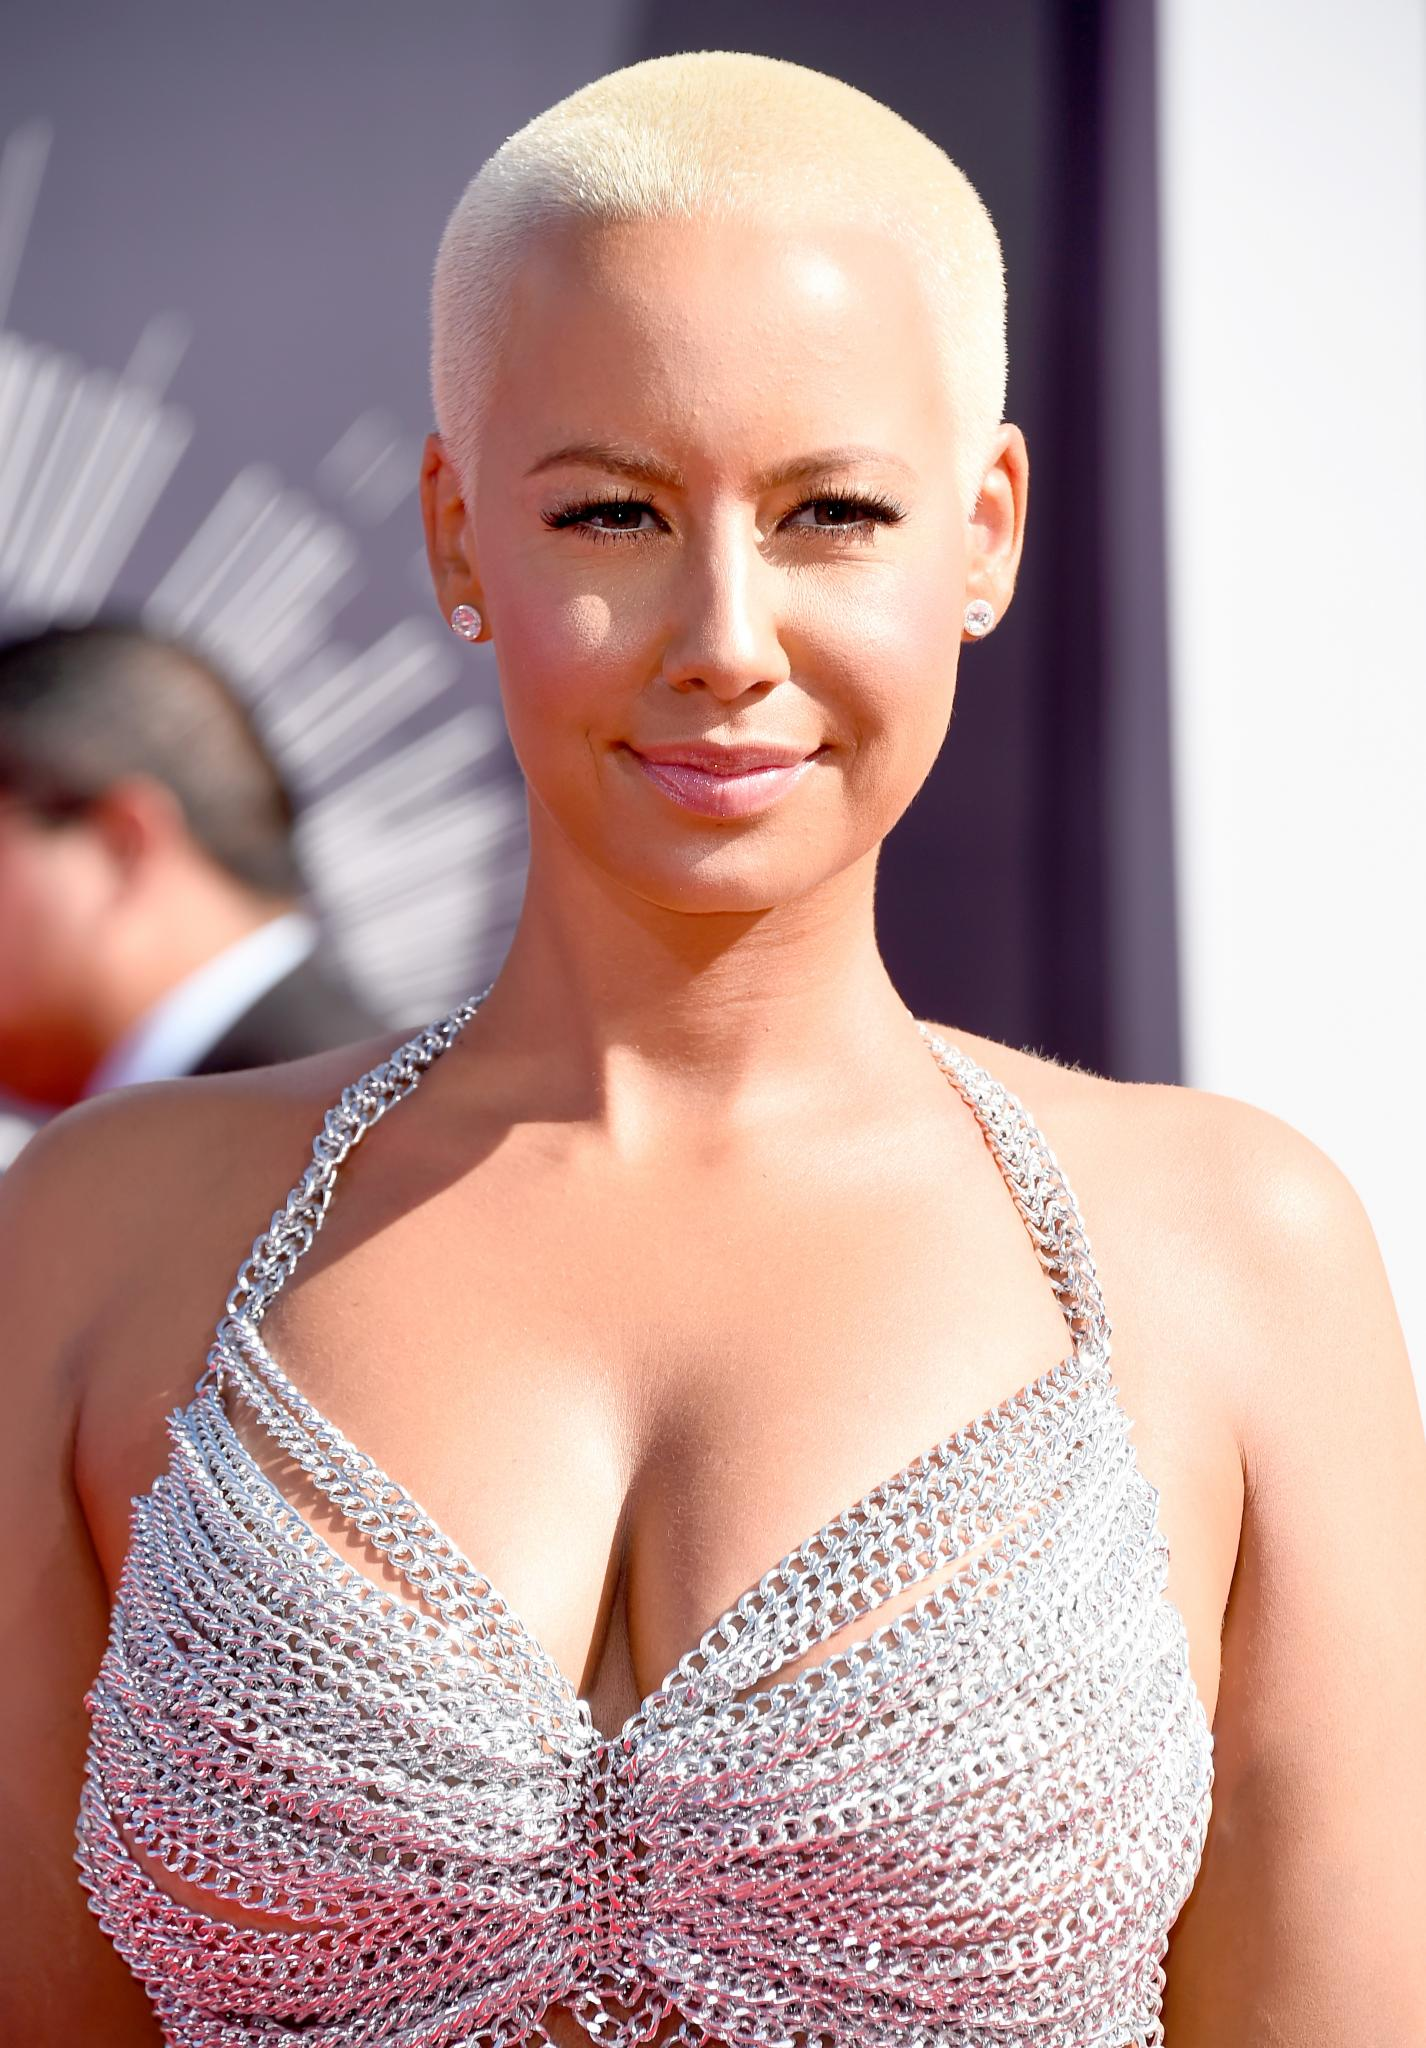 Amber Rose Clapped Back at Kanye West and Black Twitter Held Her Down